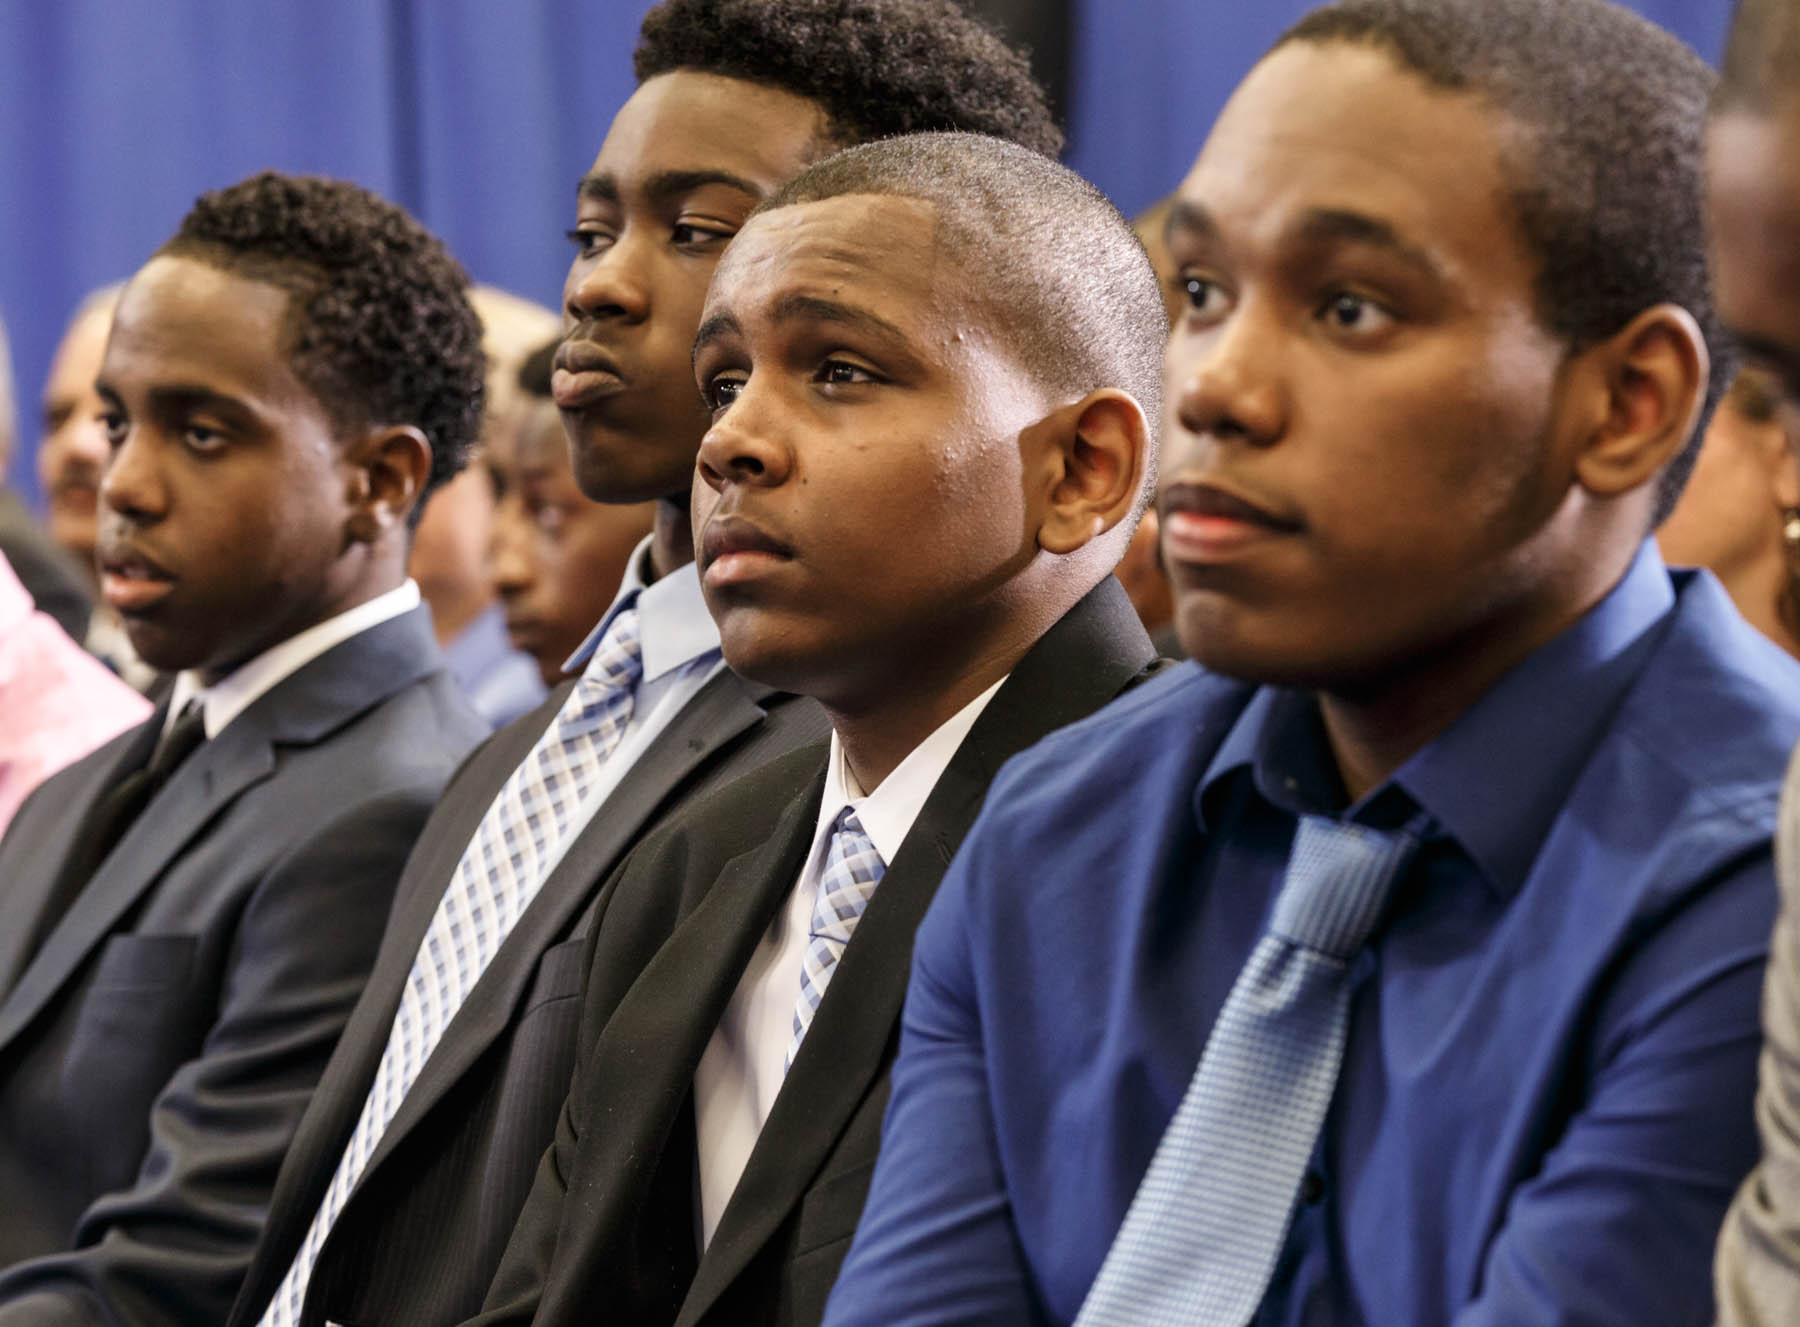 Group of young black men in audience wearing suits (© AP Images)